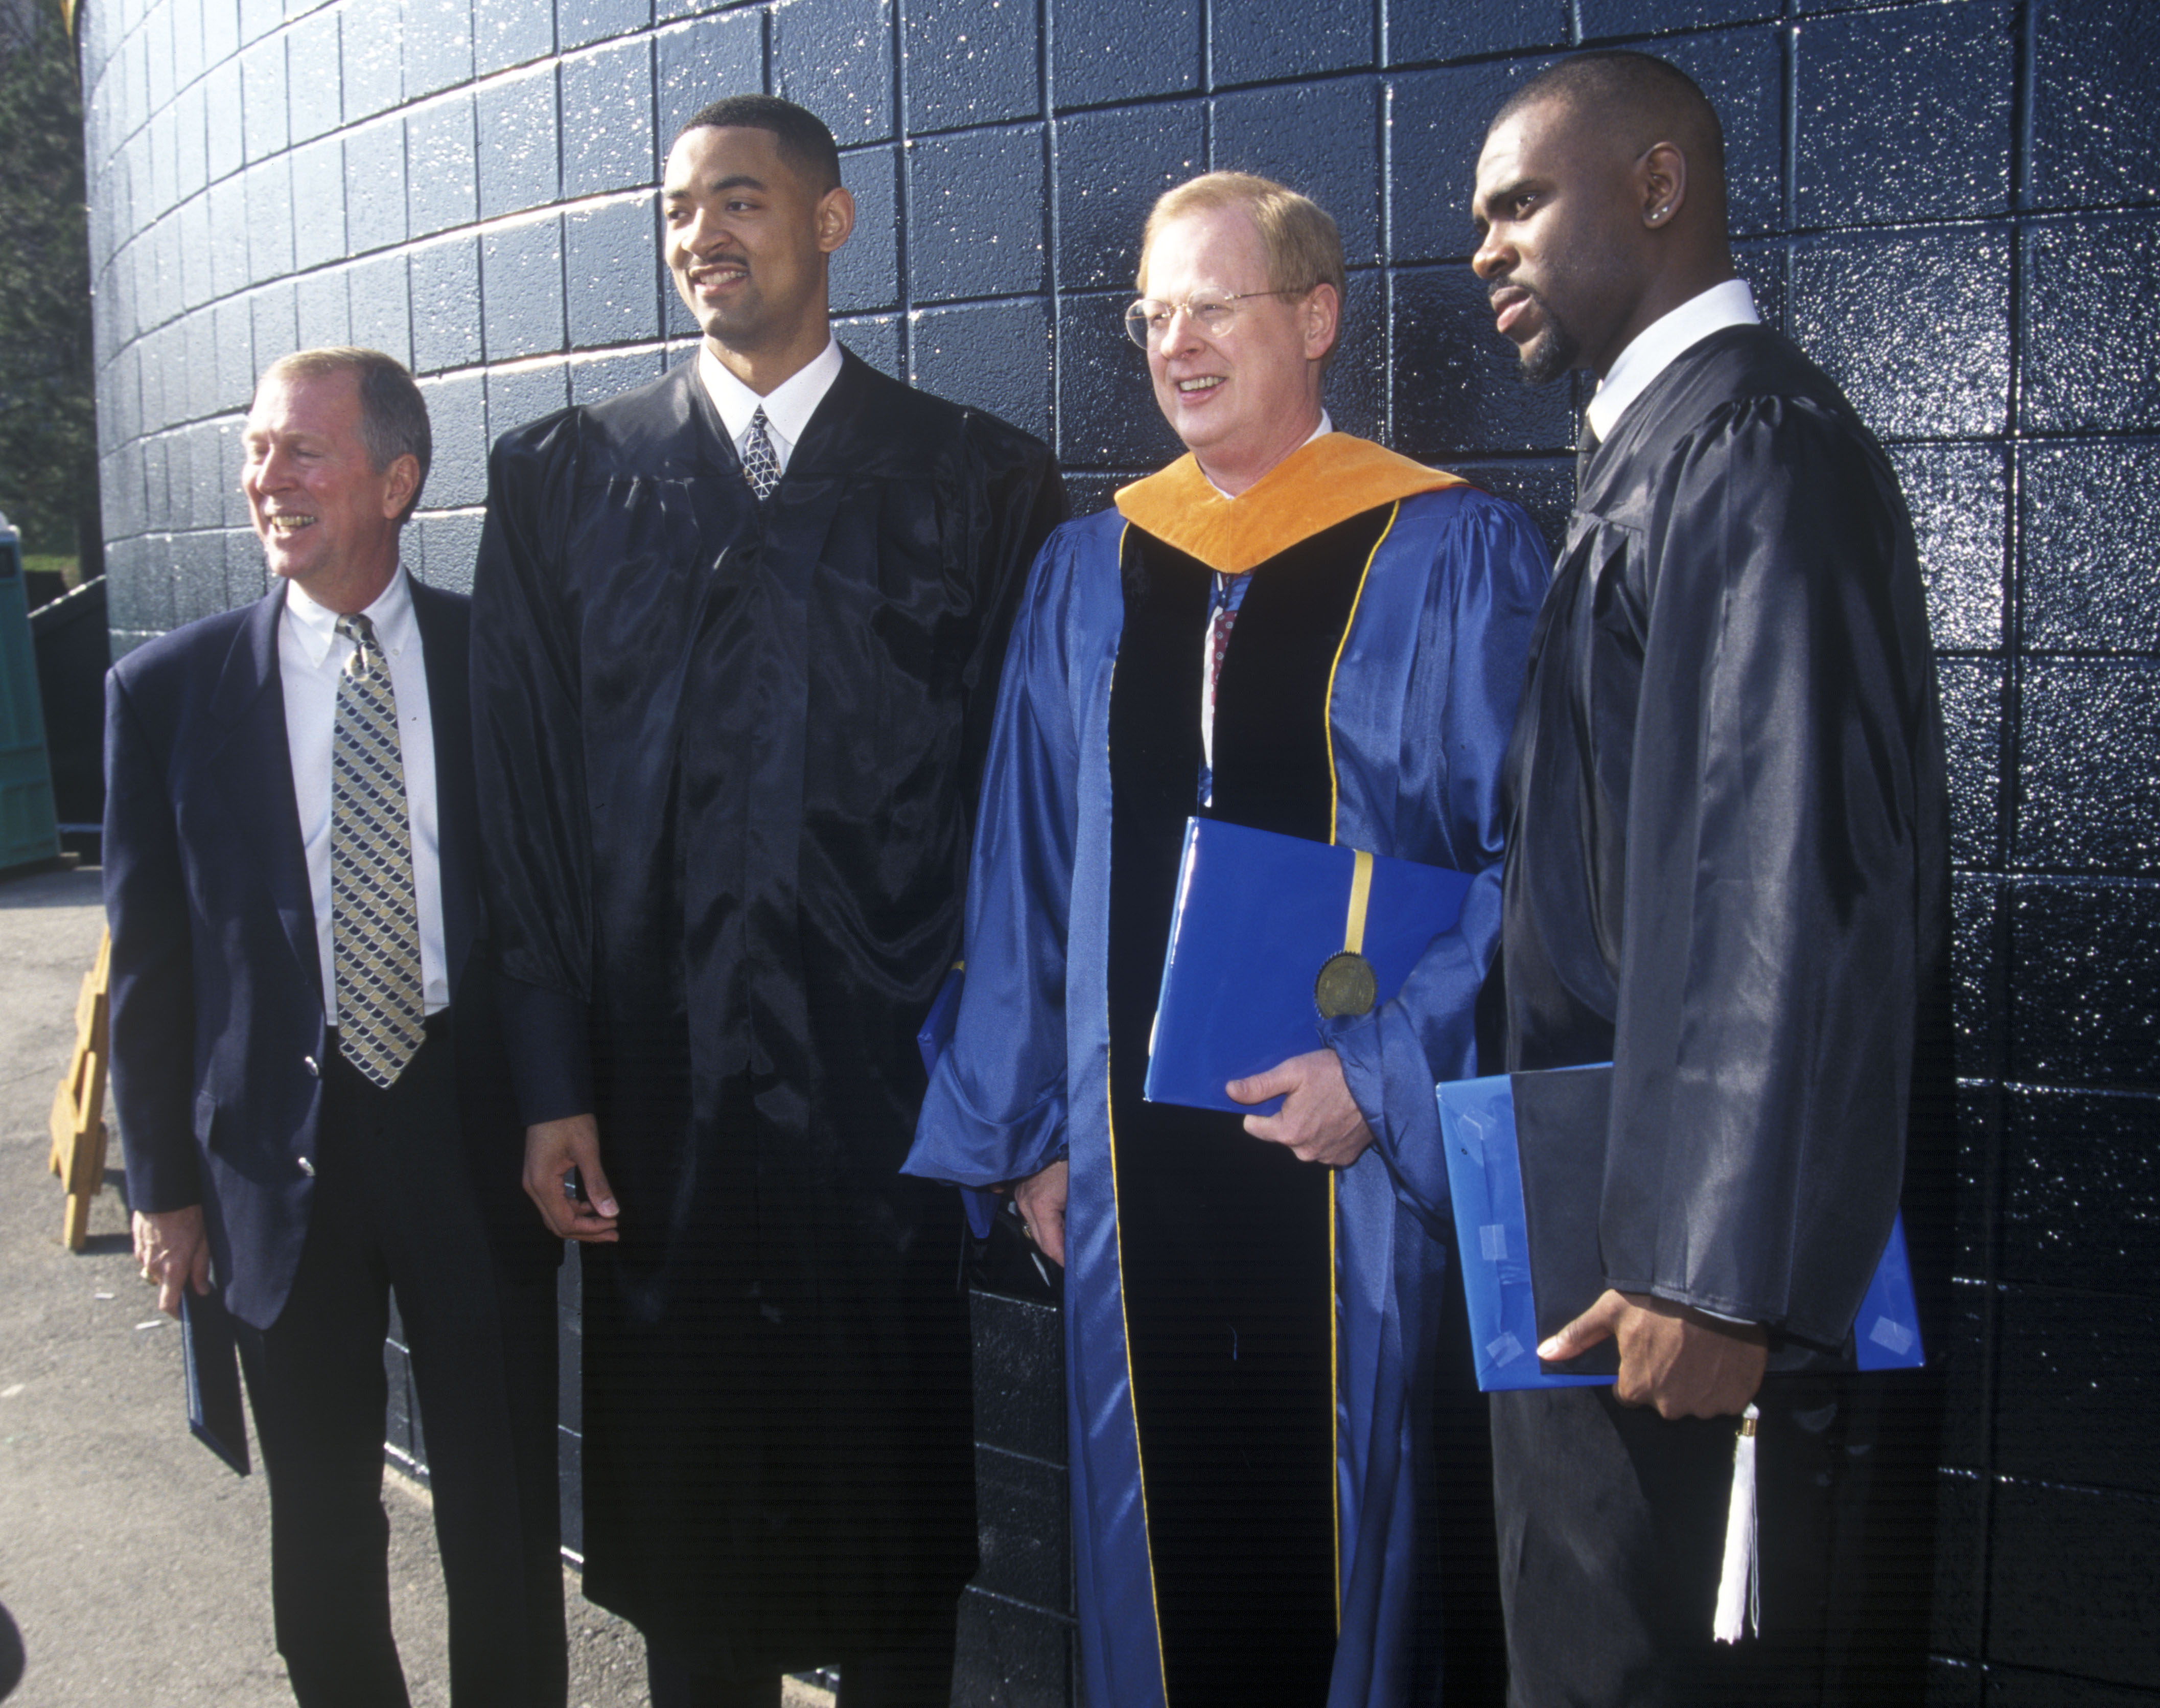 U-M Basketball Coach Steve Fisher, Basketball Player Juwan Howard, U-M President James J. Duderstadt, and Ray Jackson at Michigan Commencement, April 1995 image